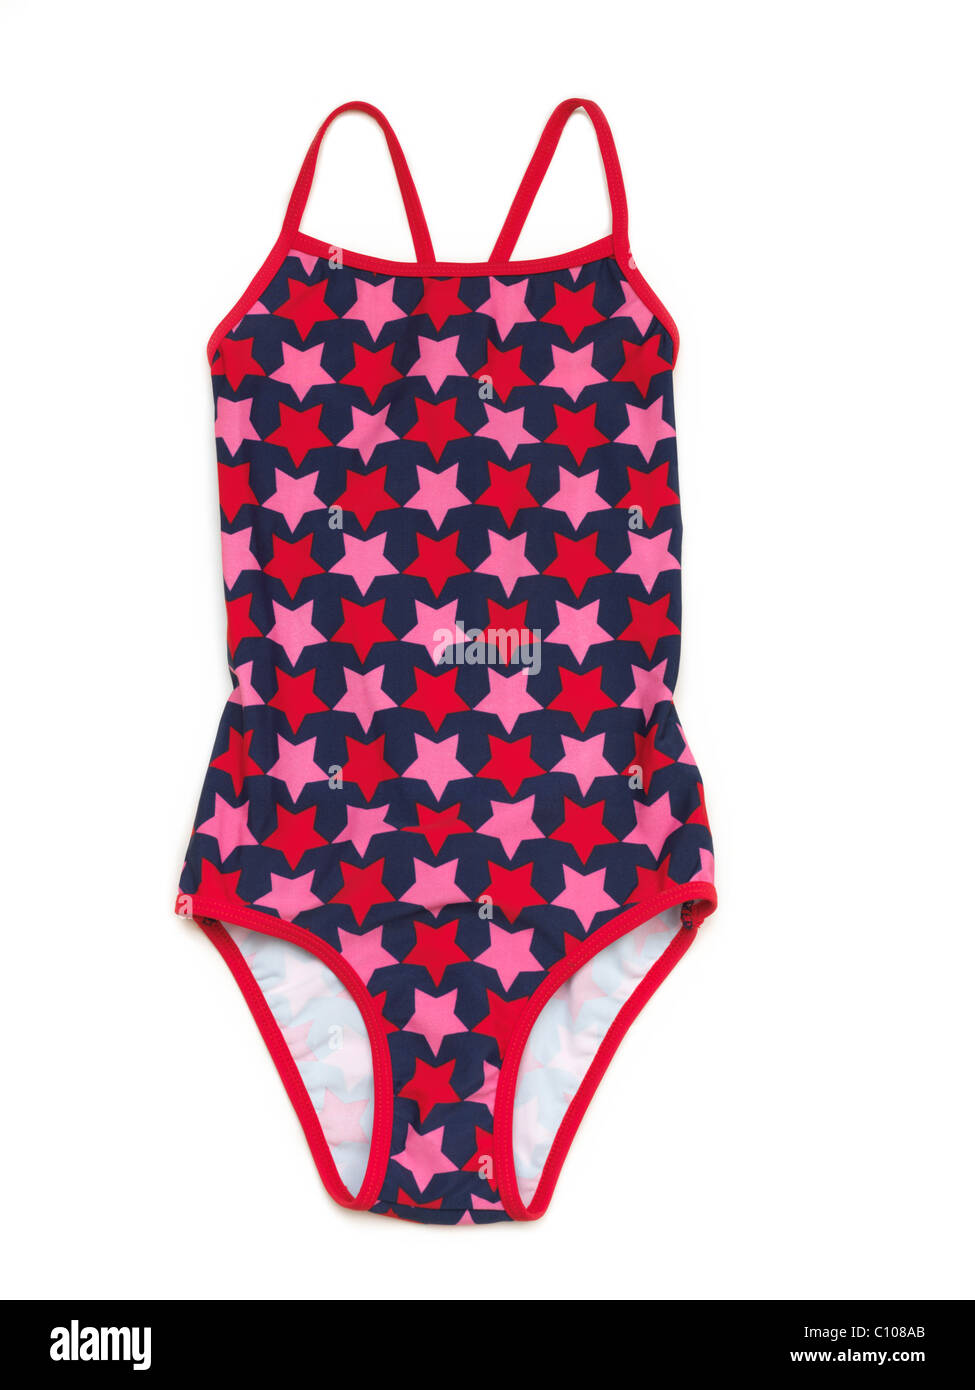 Girlu0027s Swimming Costume With A Star Pattern  sc 1 st  Alamy & Girlu0027s Swimming Costume With A Star Pattern Stock Photo: 35041955 ...